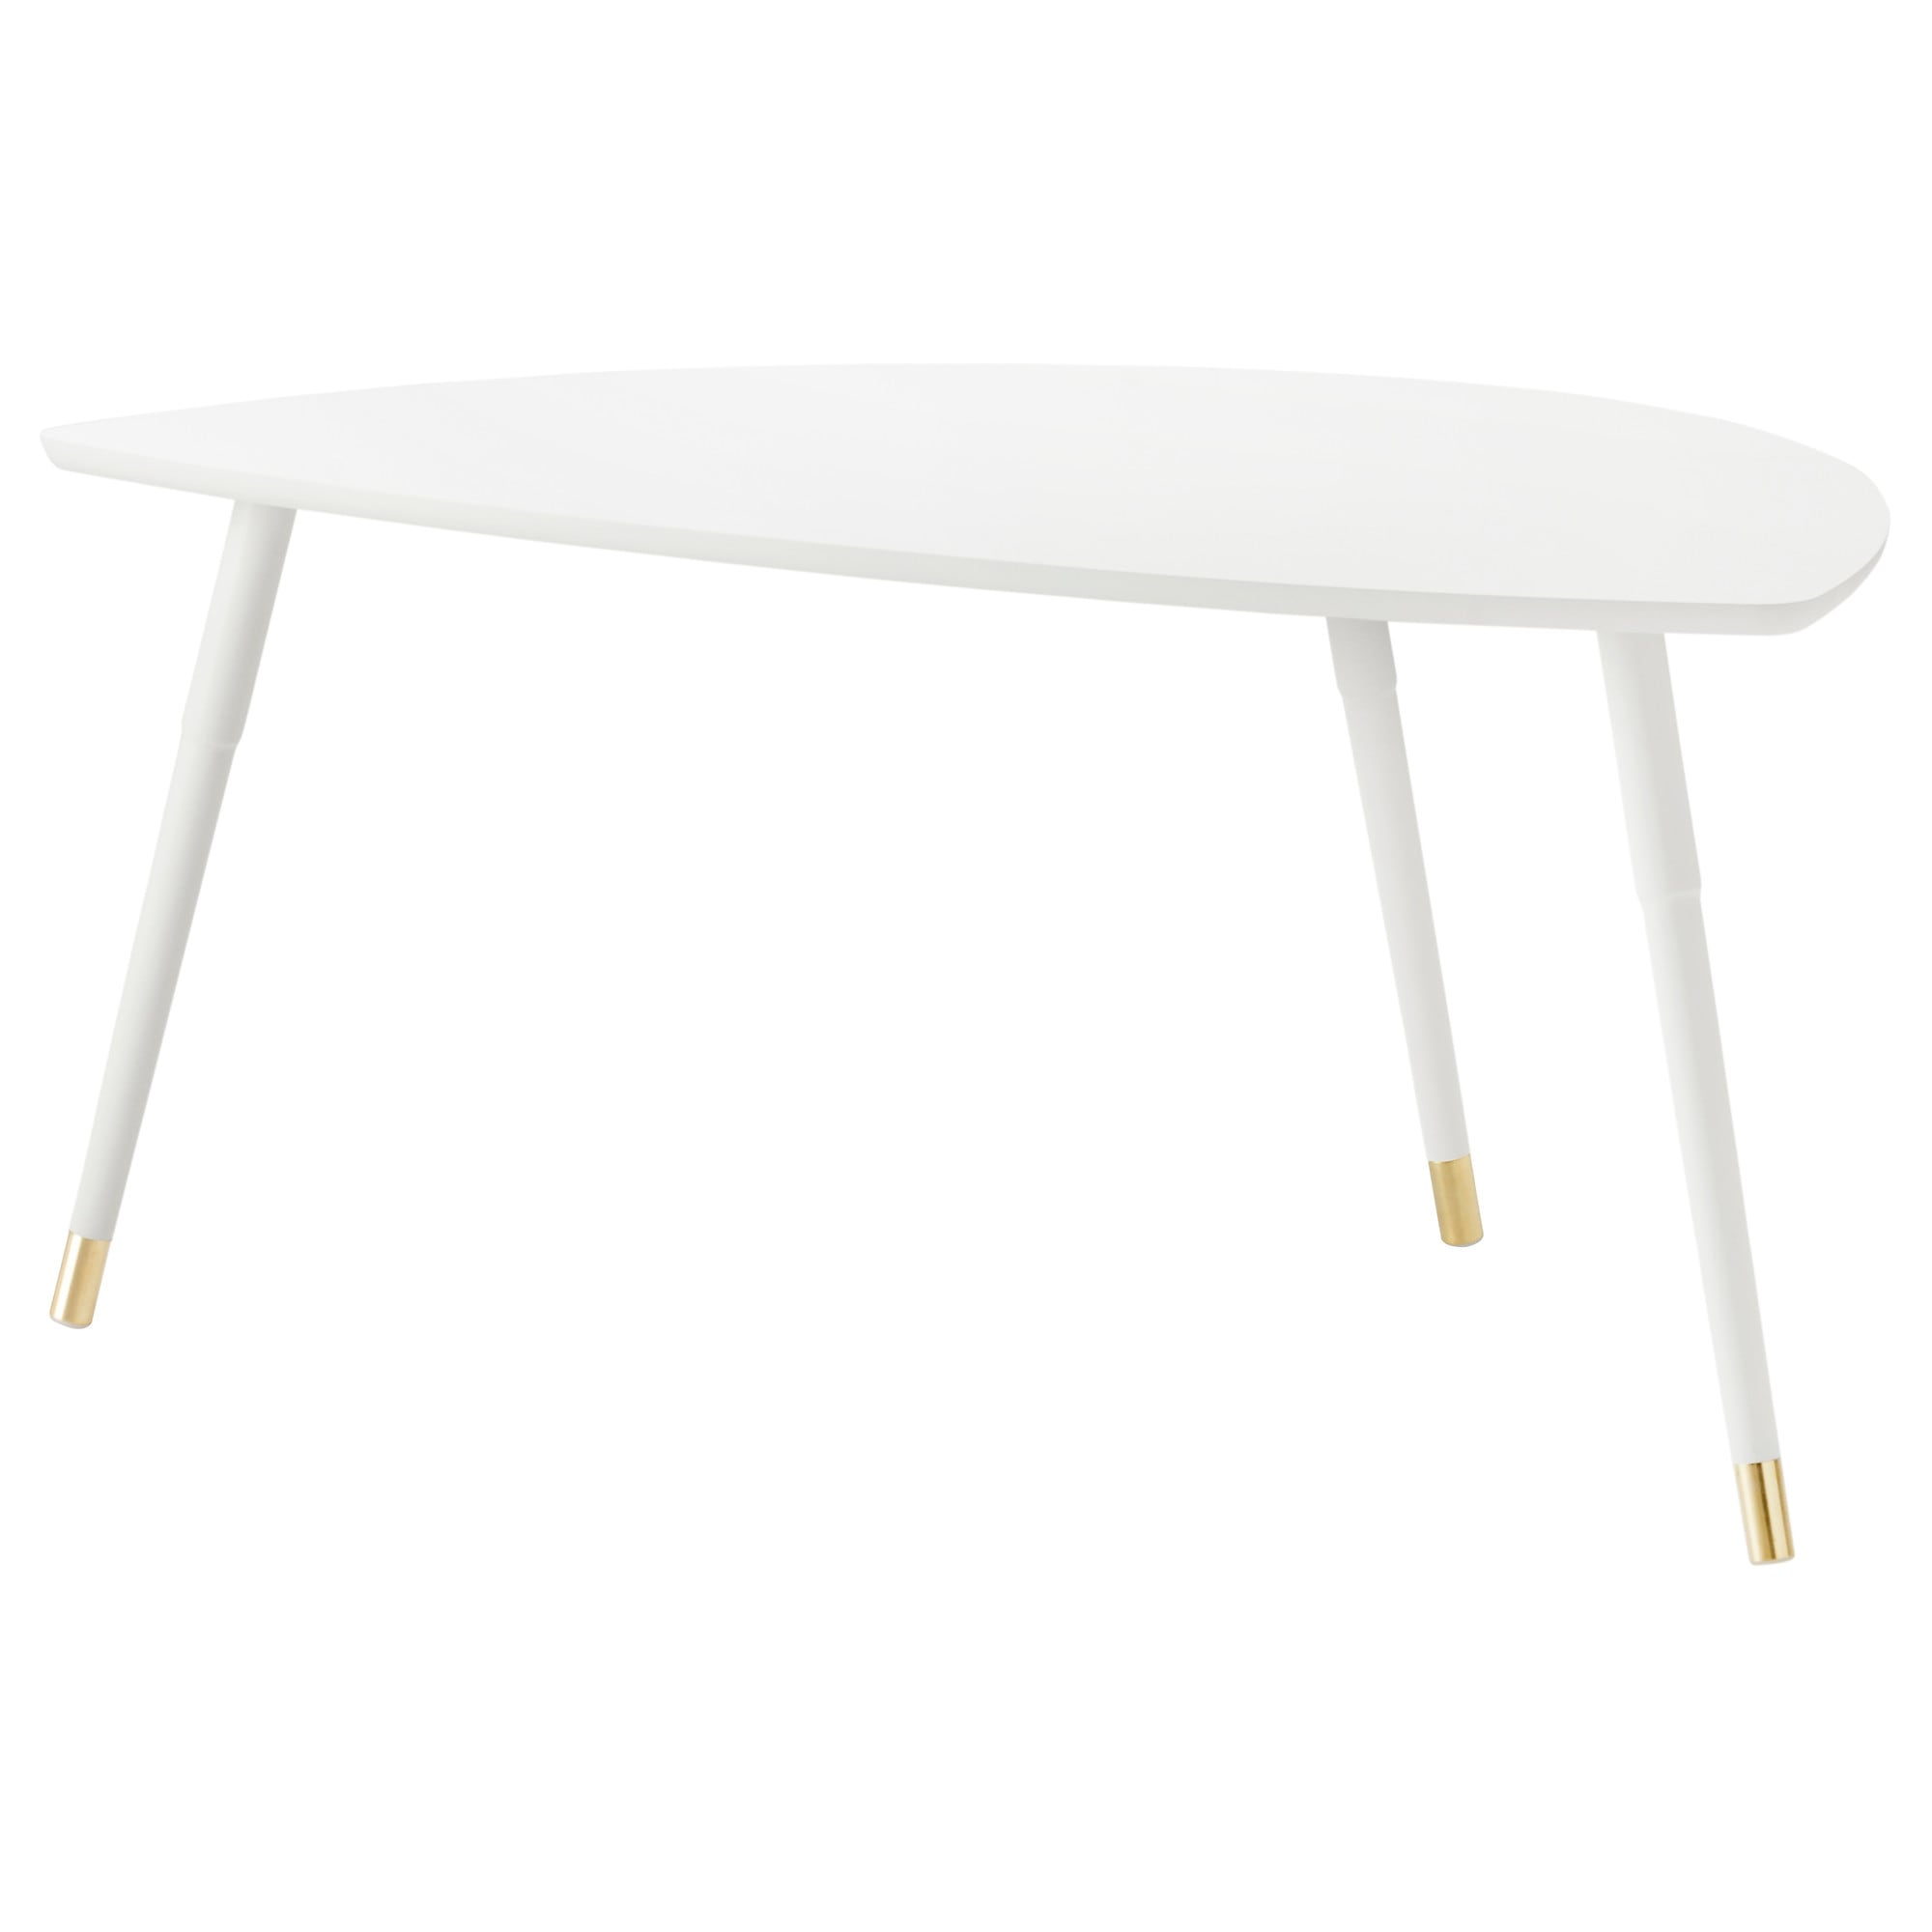 Table basse transformable chez ikea for Table basse hauteur 55 cm